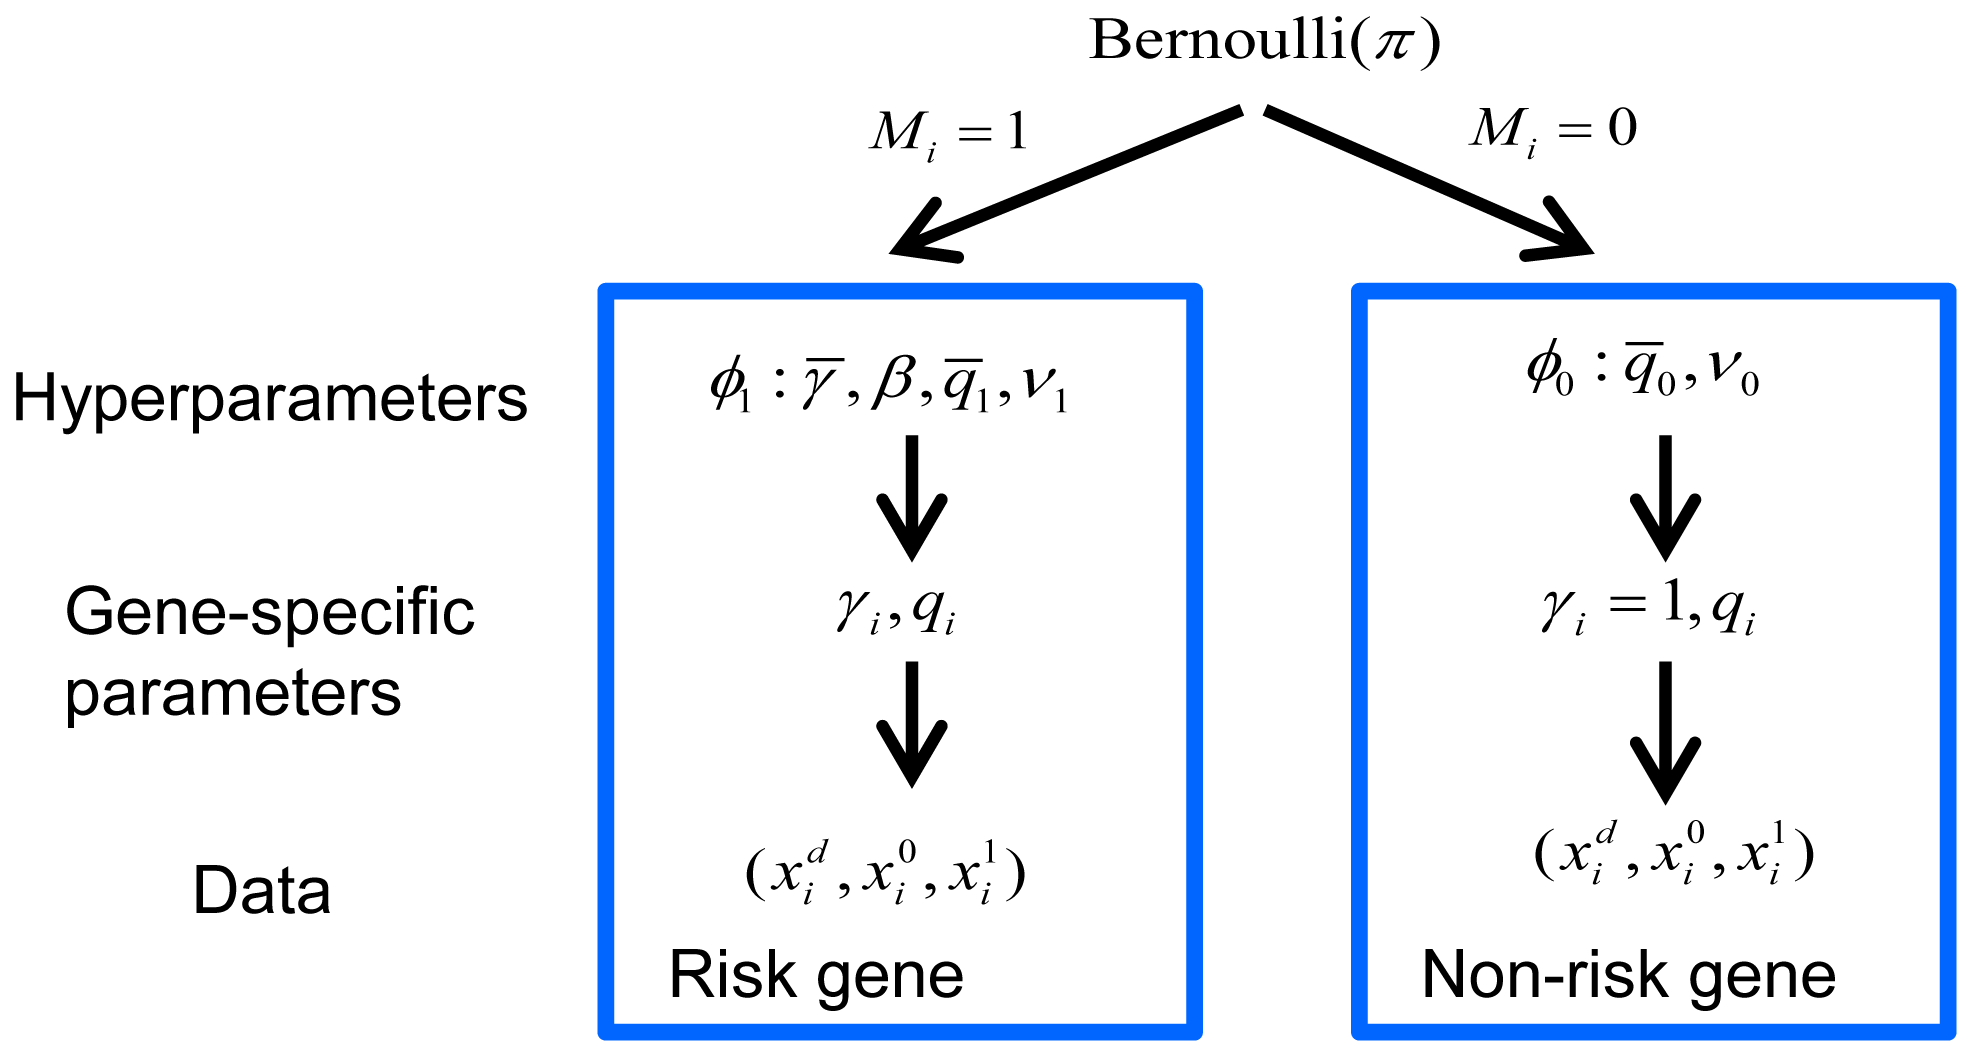 Bayesian hierarchical model of TADA.